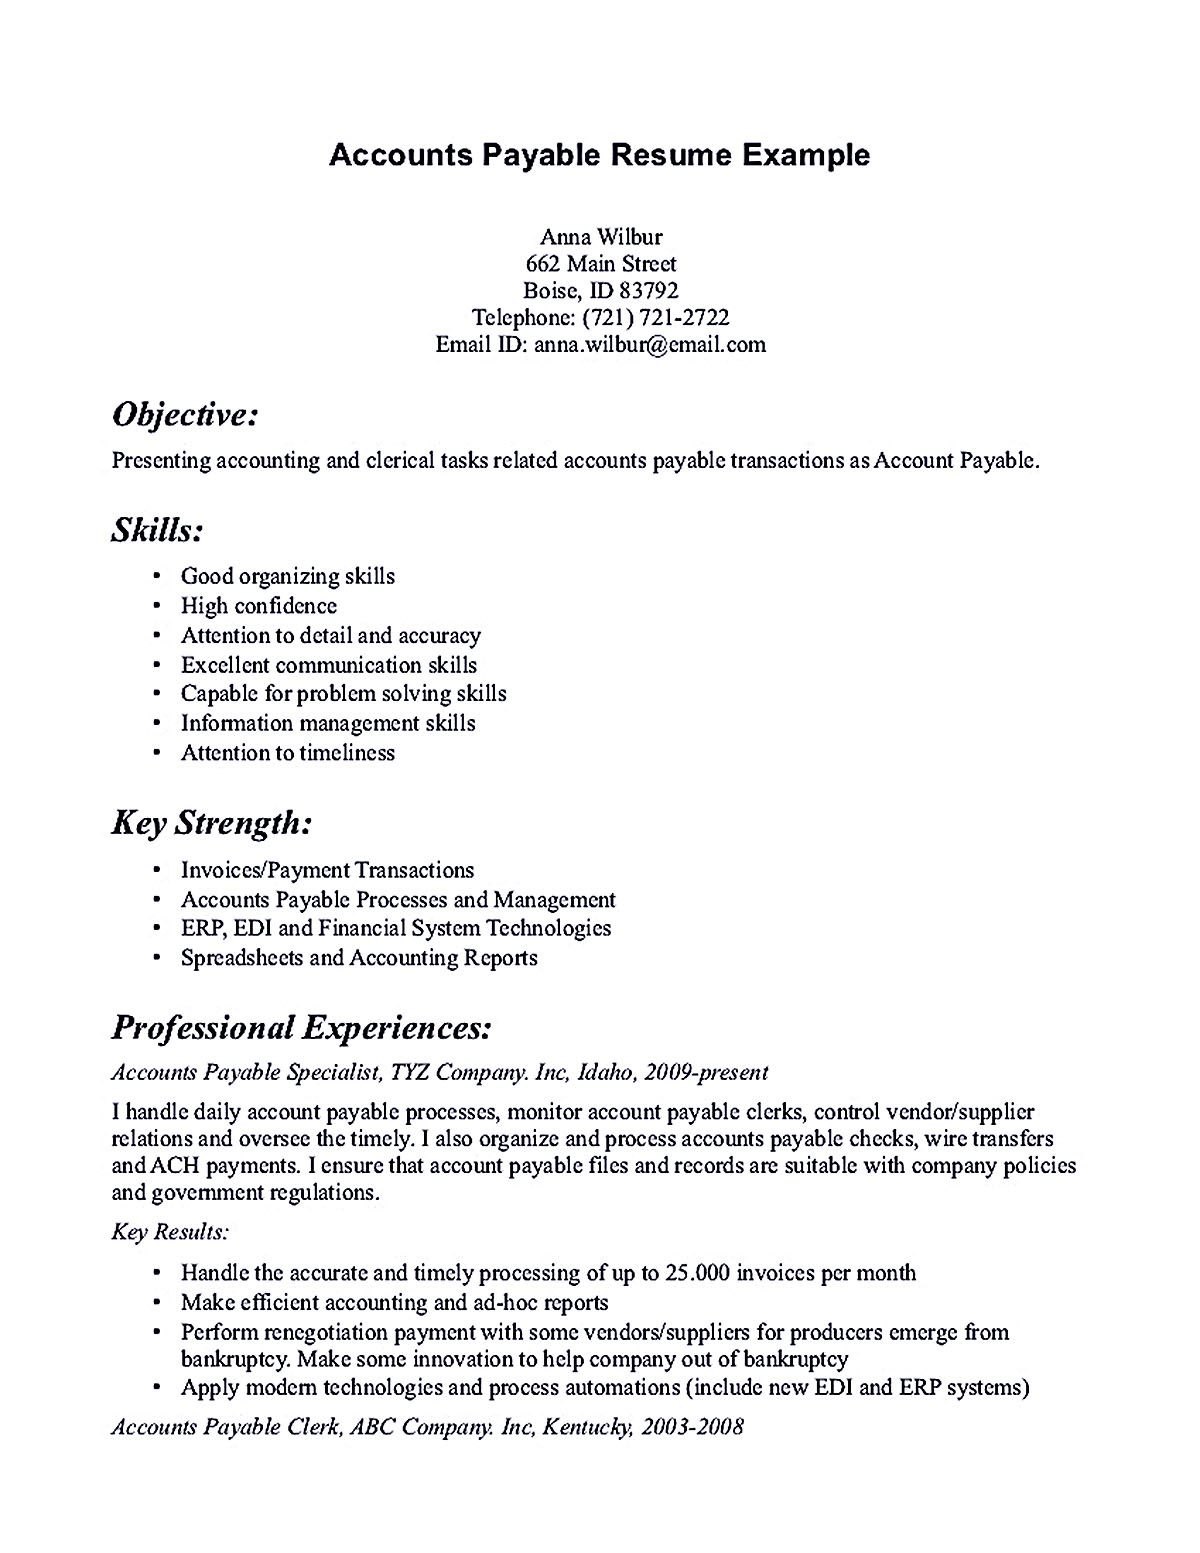 Objective For Accounts Payable Resume Account Payable Resume Display Your Skills As Account